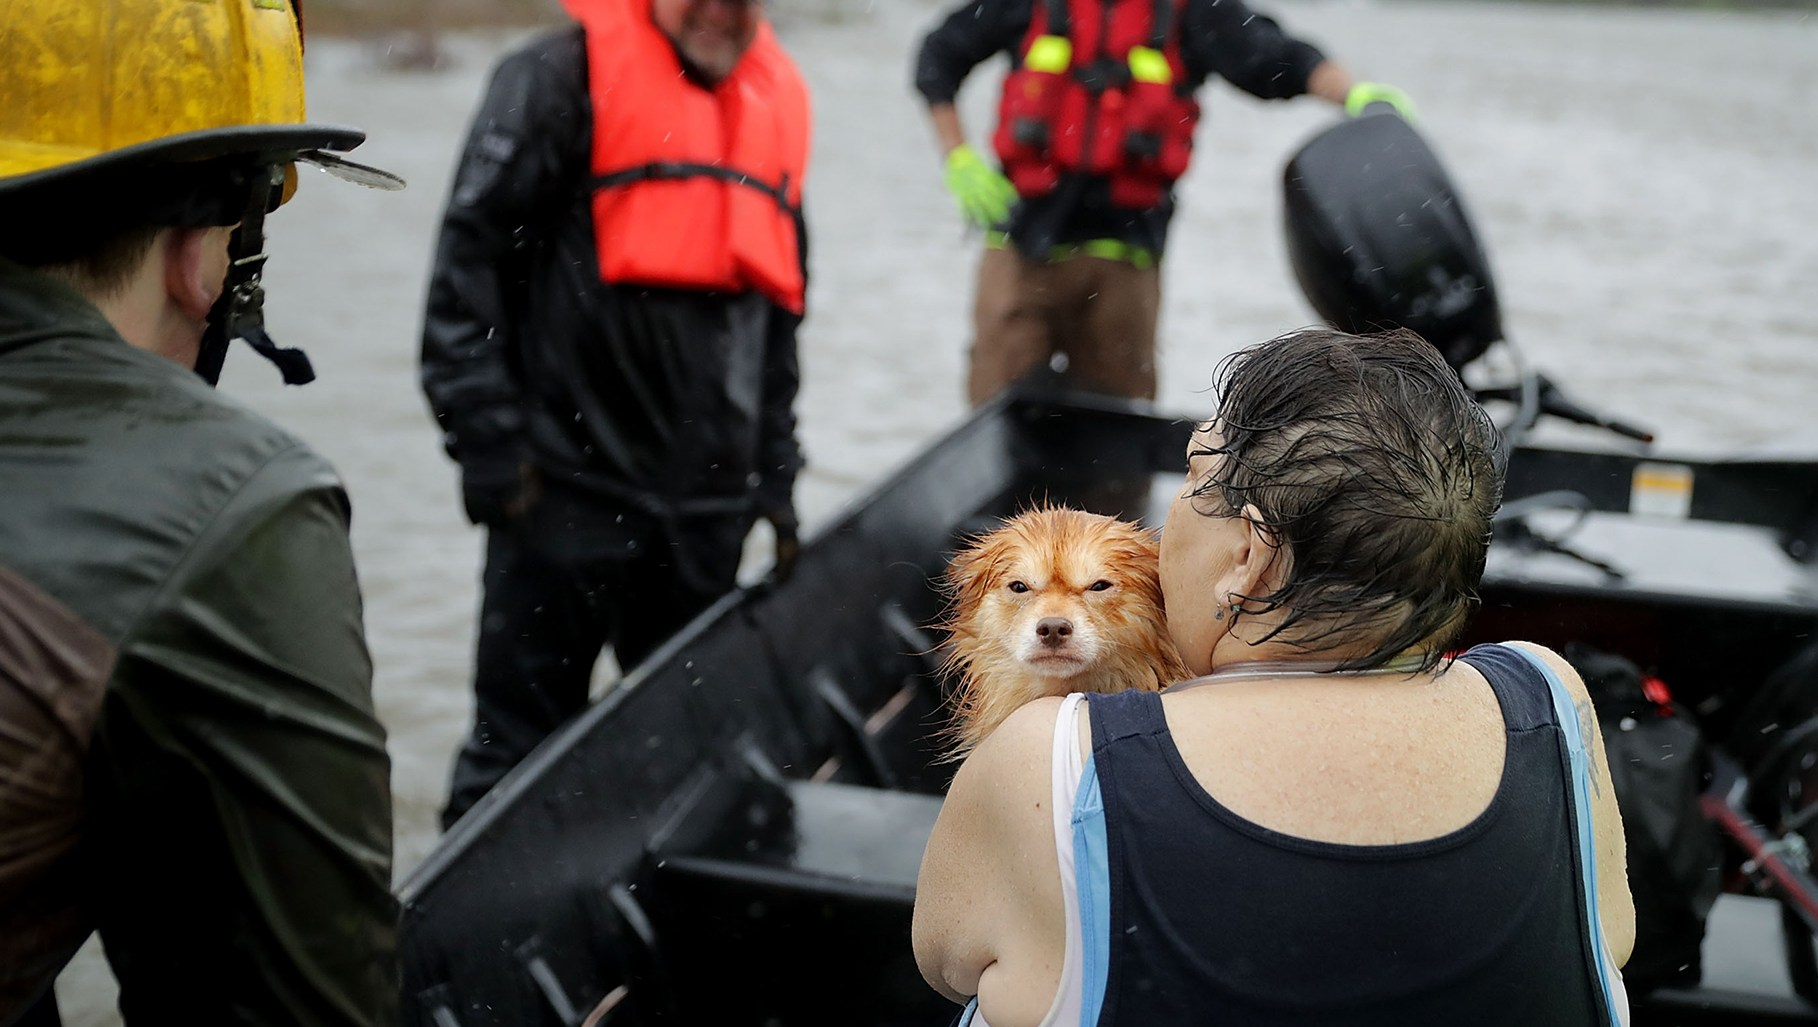 Rescue workers from Township No. 7 Fire Department and volunteers from the Civilian Crisis Response Team use a boat to rescue a woman and her dog from their flooded home during Hurricane Florence